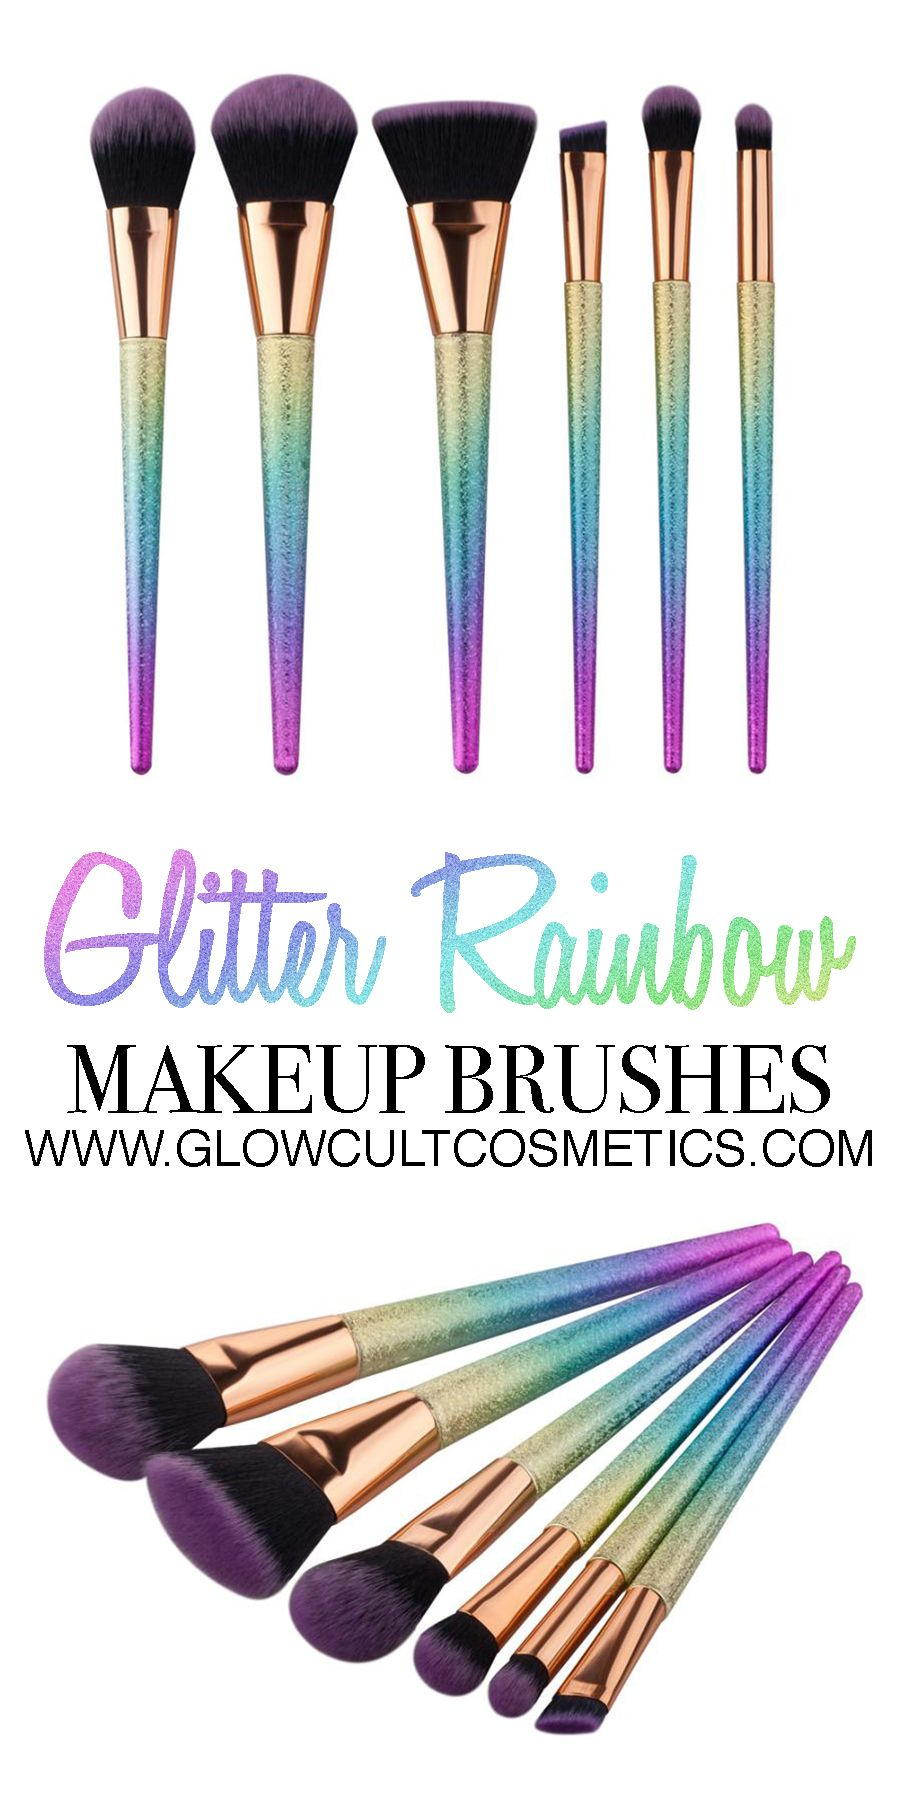 Glitter rainbow makeup brushes from www.glowcultcosmetics